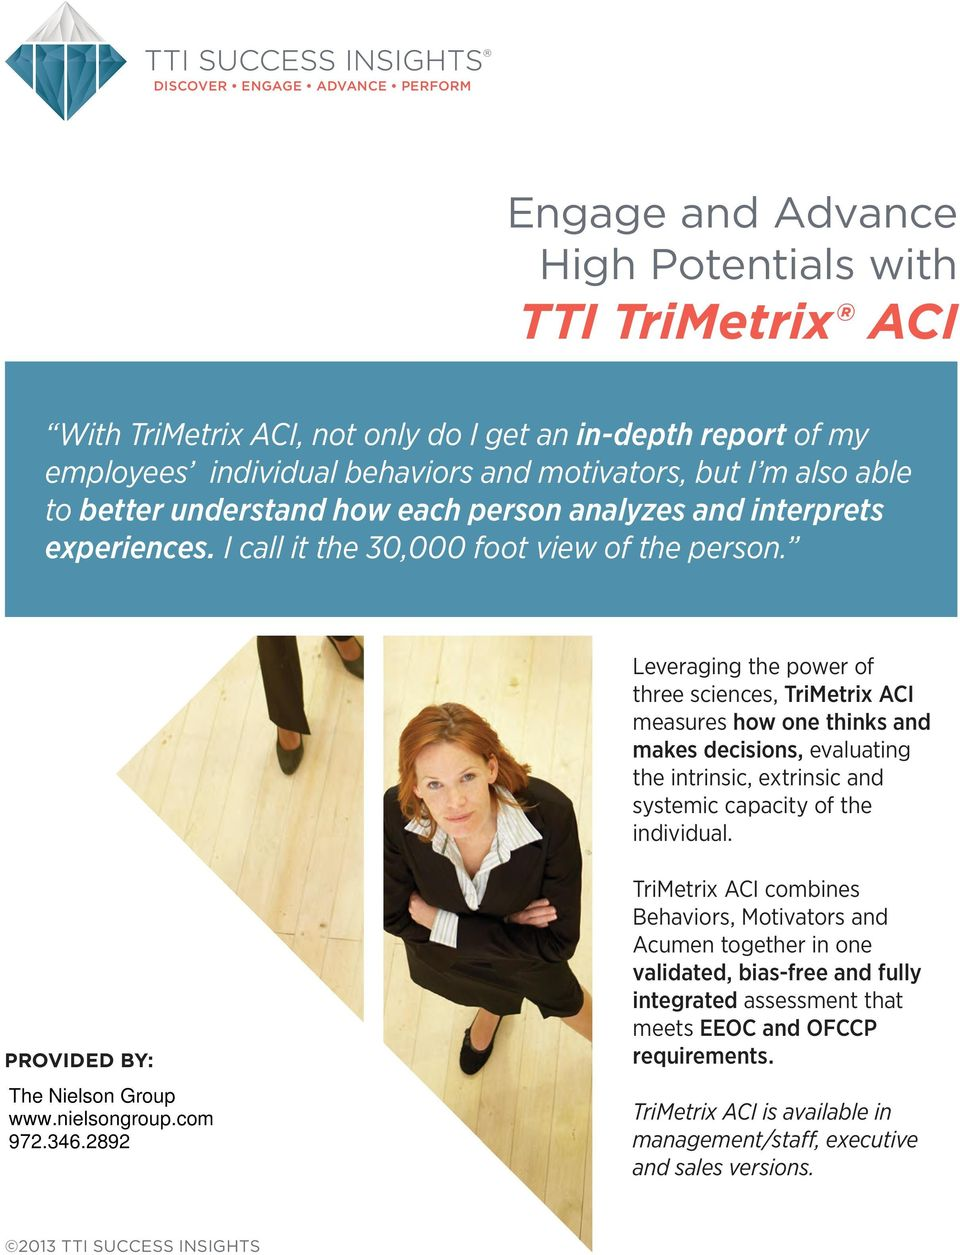 Leveraging the power of three sciences, TriMetrix ACI measures how one thinks and makes decisions, evaluating the intrinsic, extrinsic and systemic capacity of the individual.